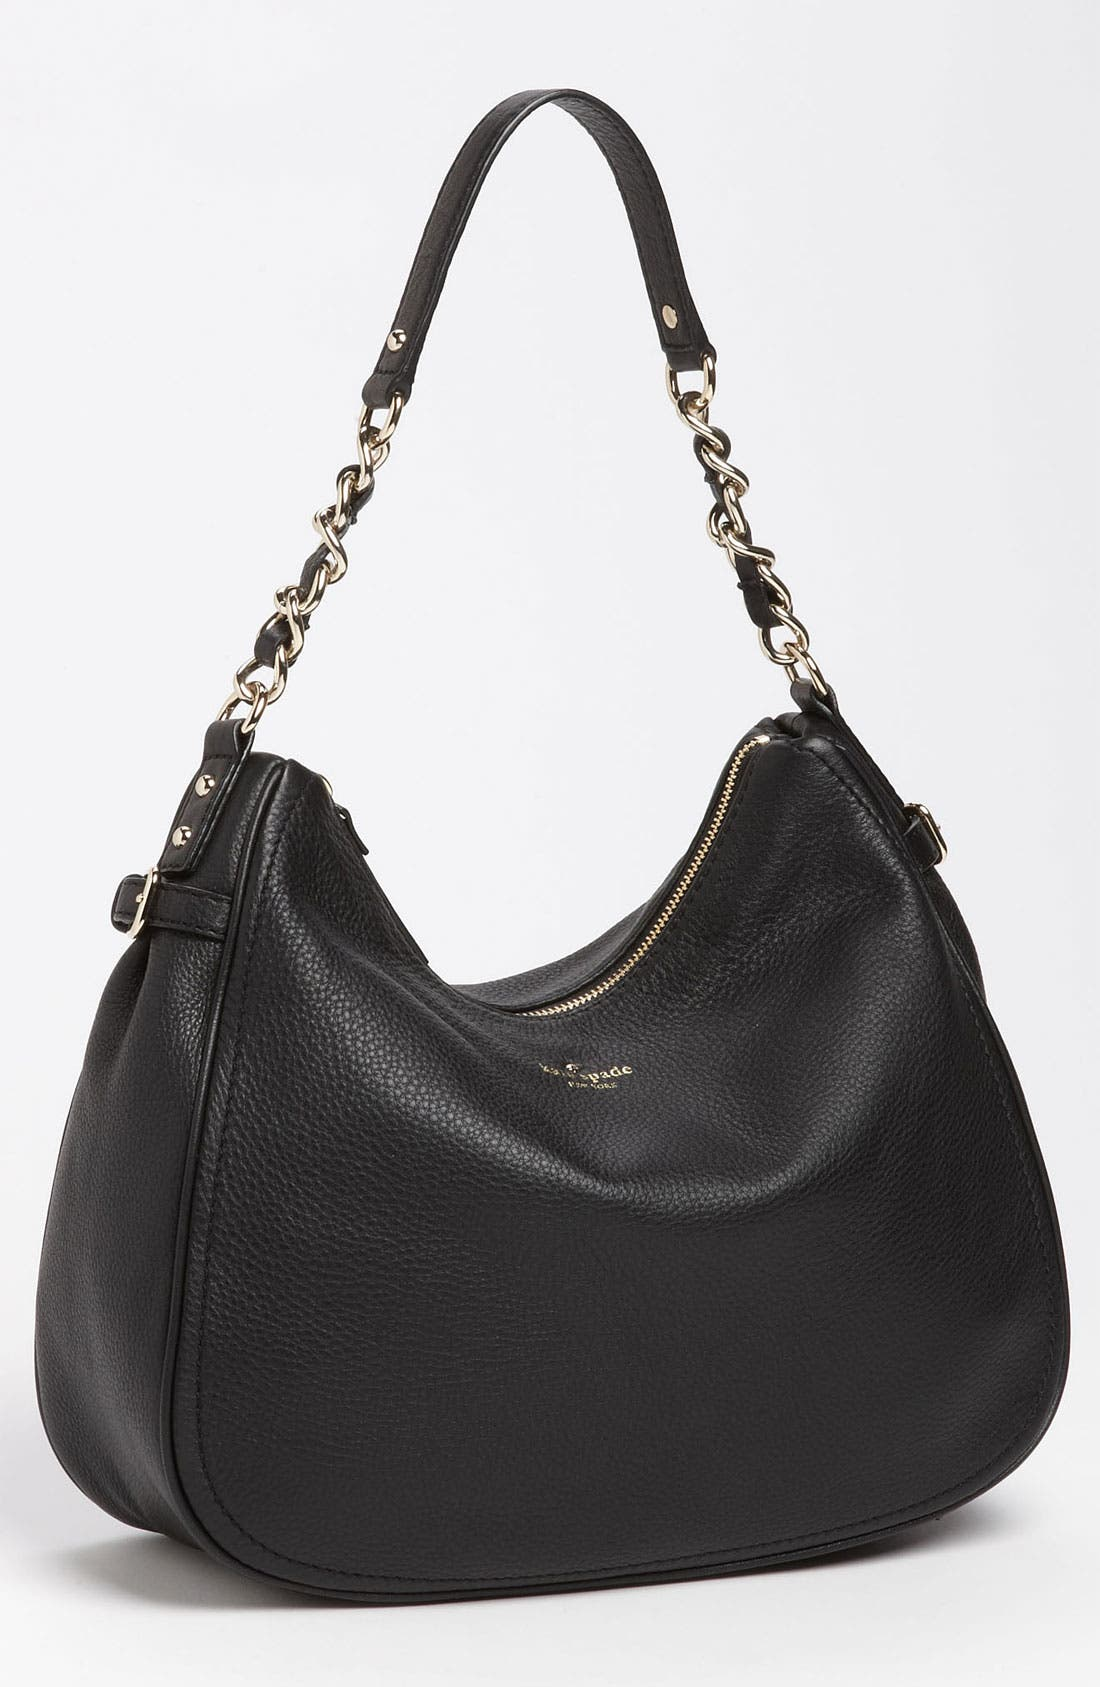 Main Image - kate spade new york 'cobble hill - finley' hobo